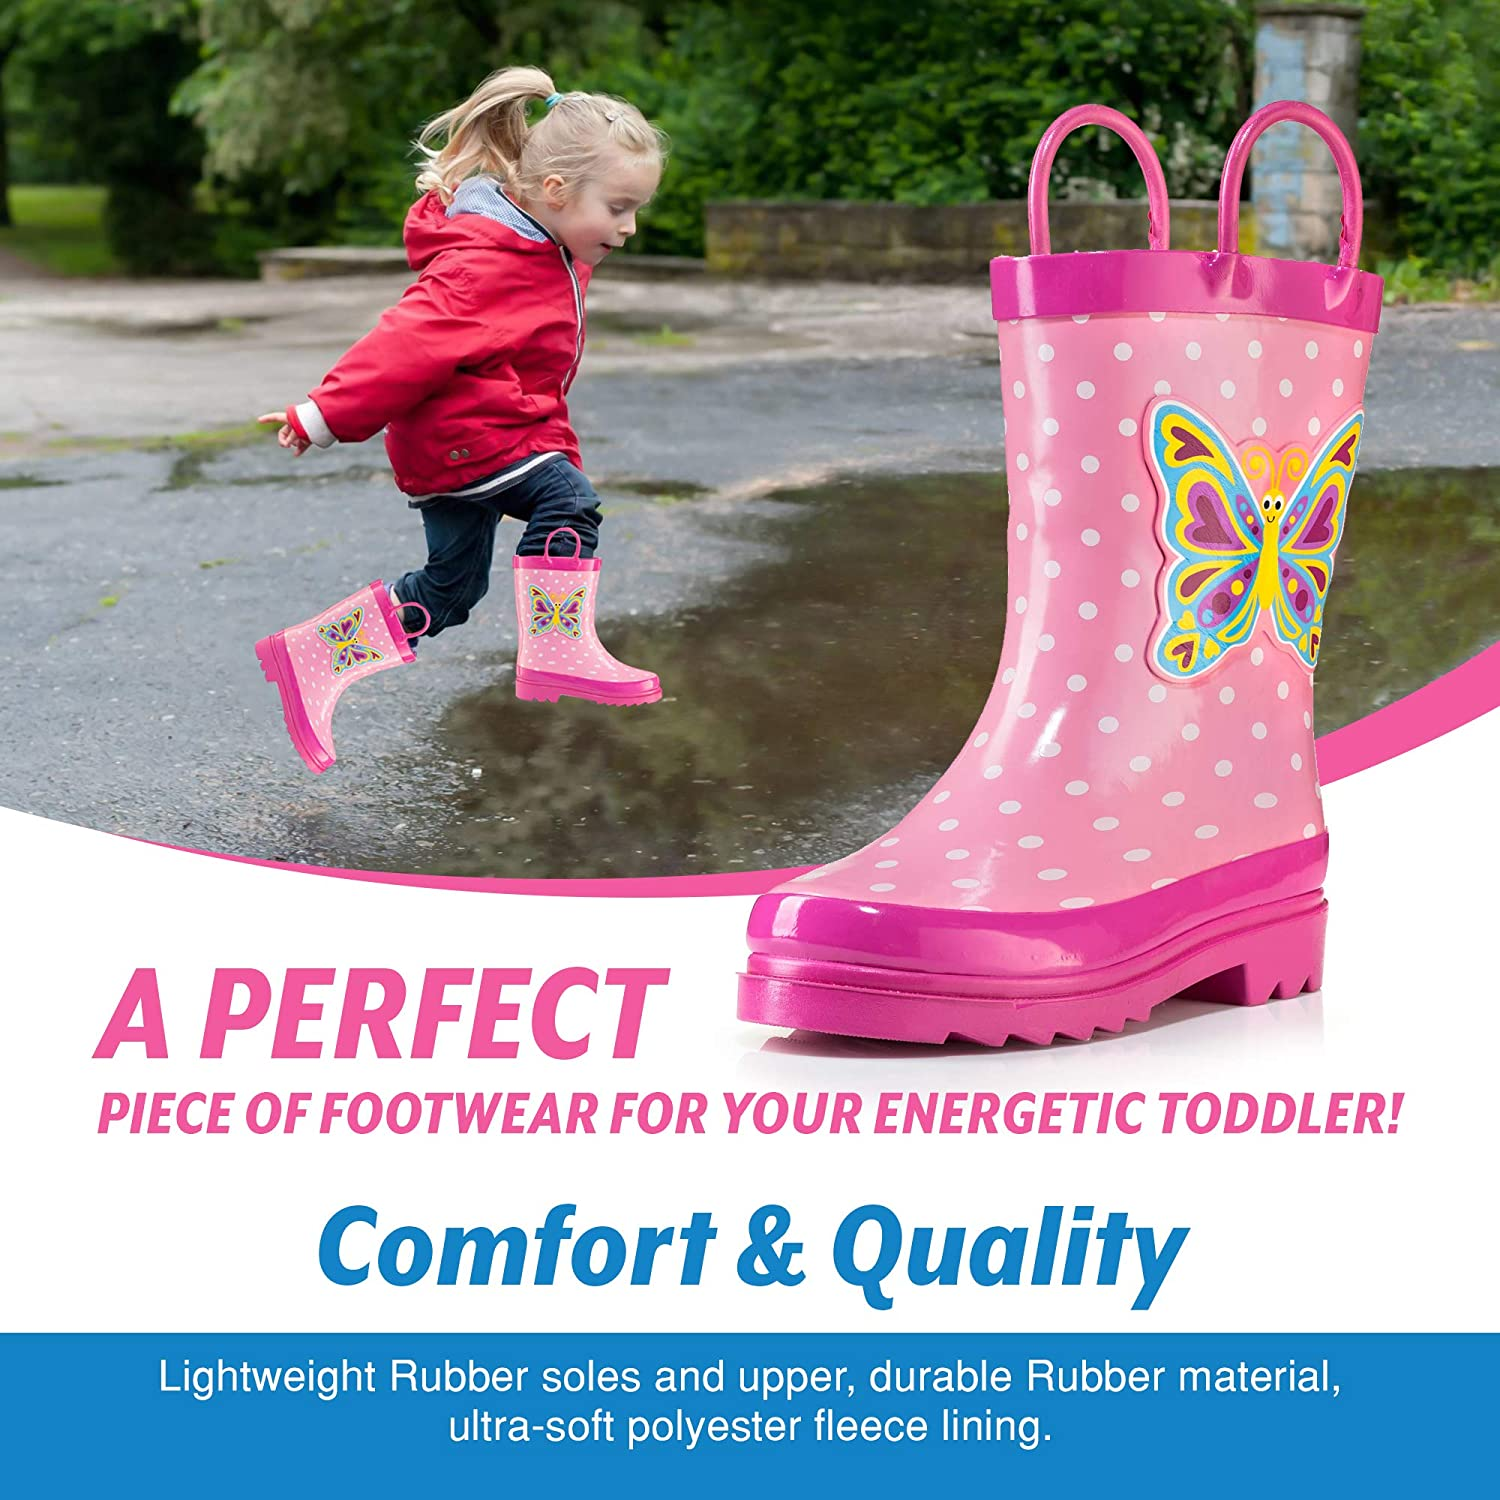 Puddle Play Toddler and Kids Waterproof Rubber Rain Boots with Easy-On Handles Boys and Girls Colors and Designs